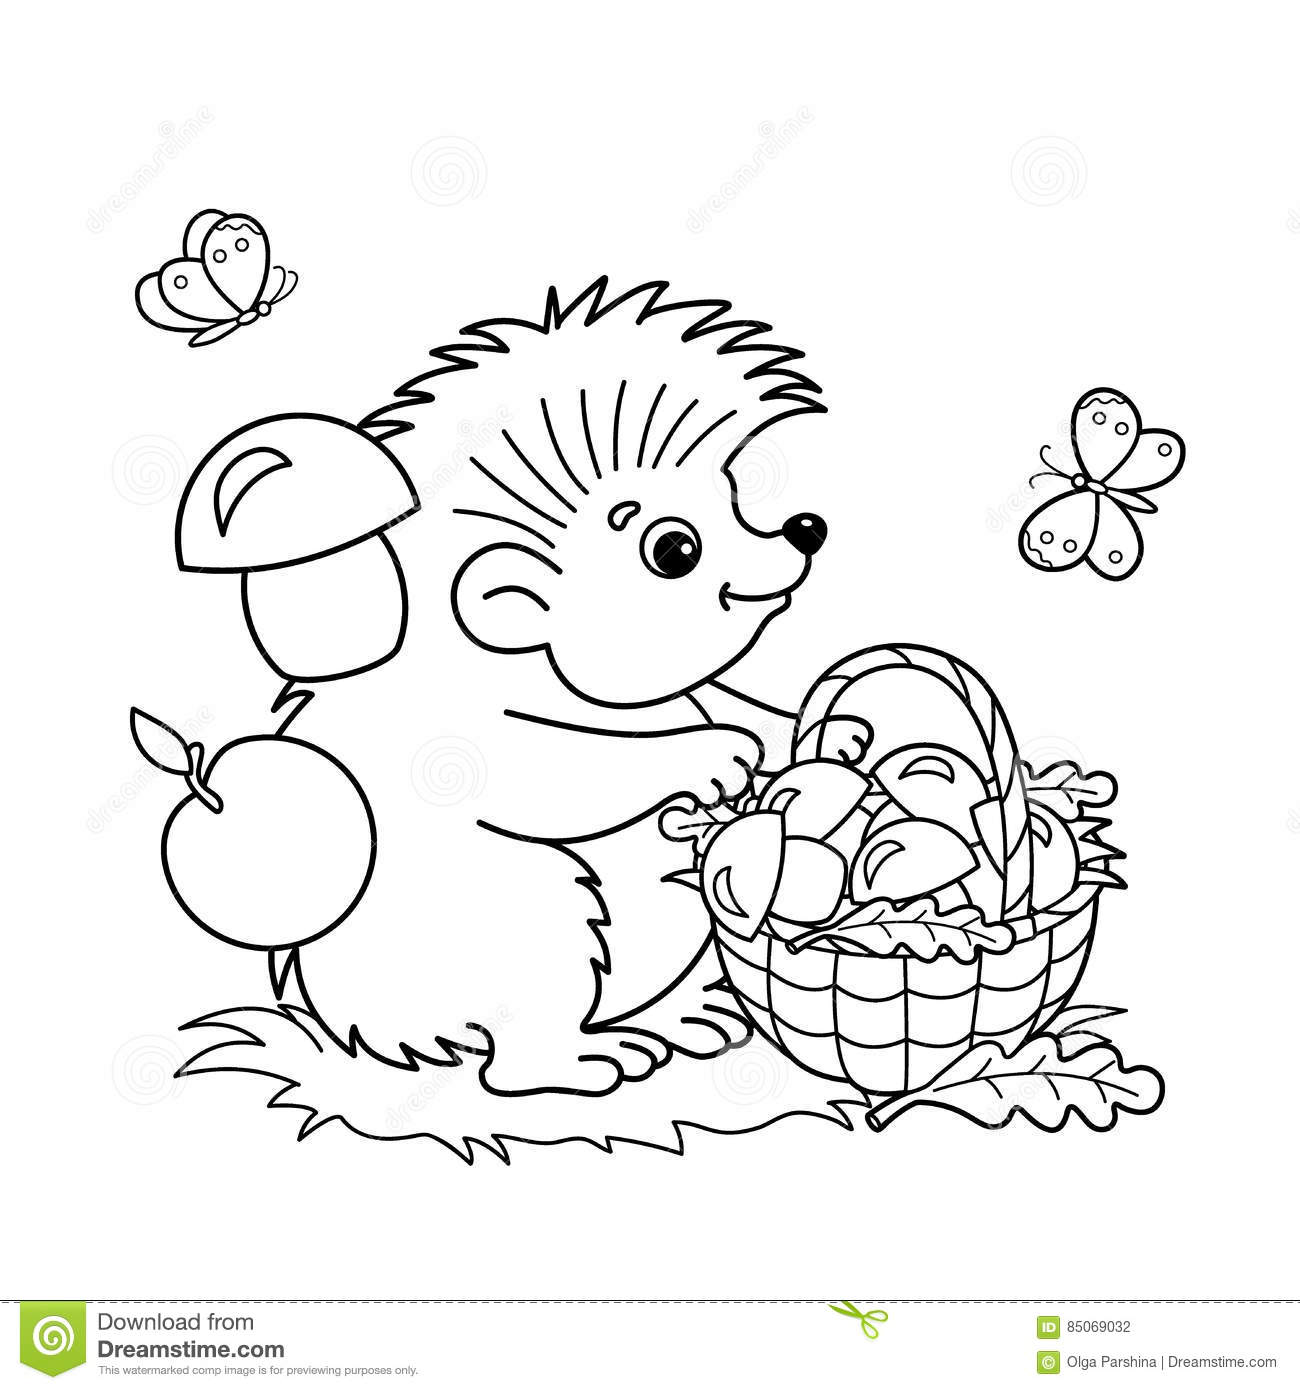 Coloring Page Outline Of Cartoon Hedgehog With Basket Of Mushrooms